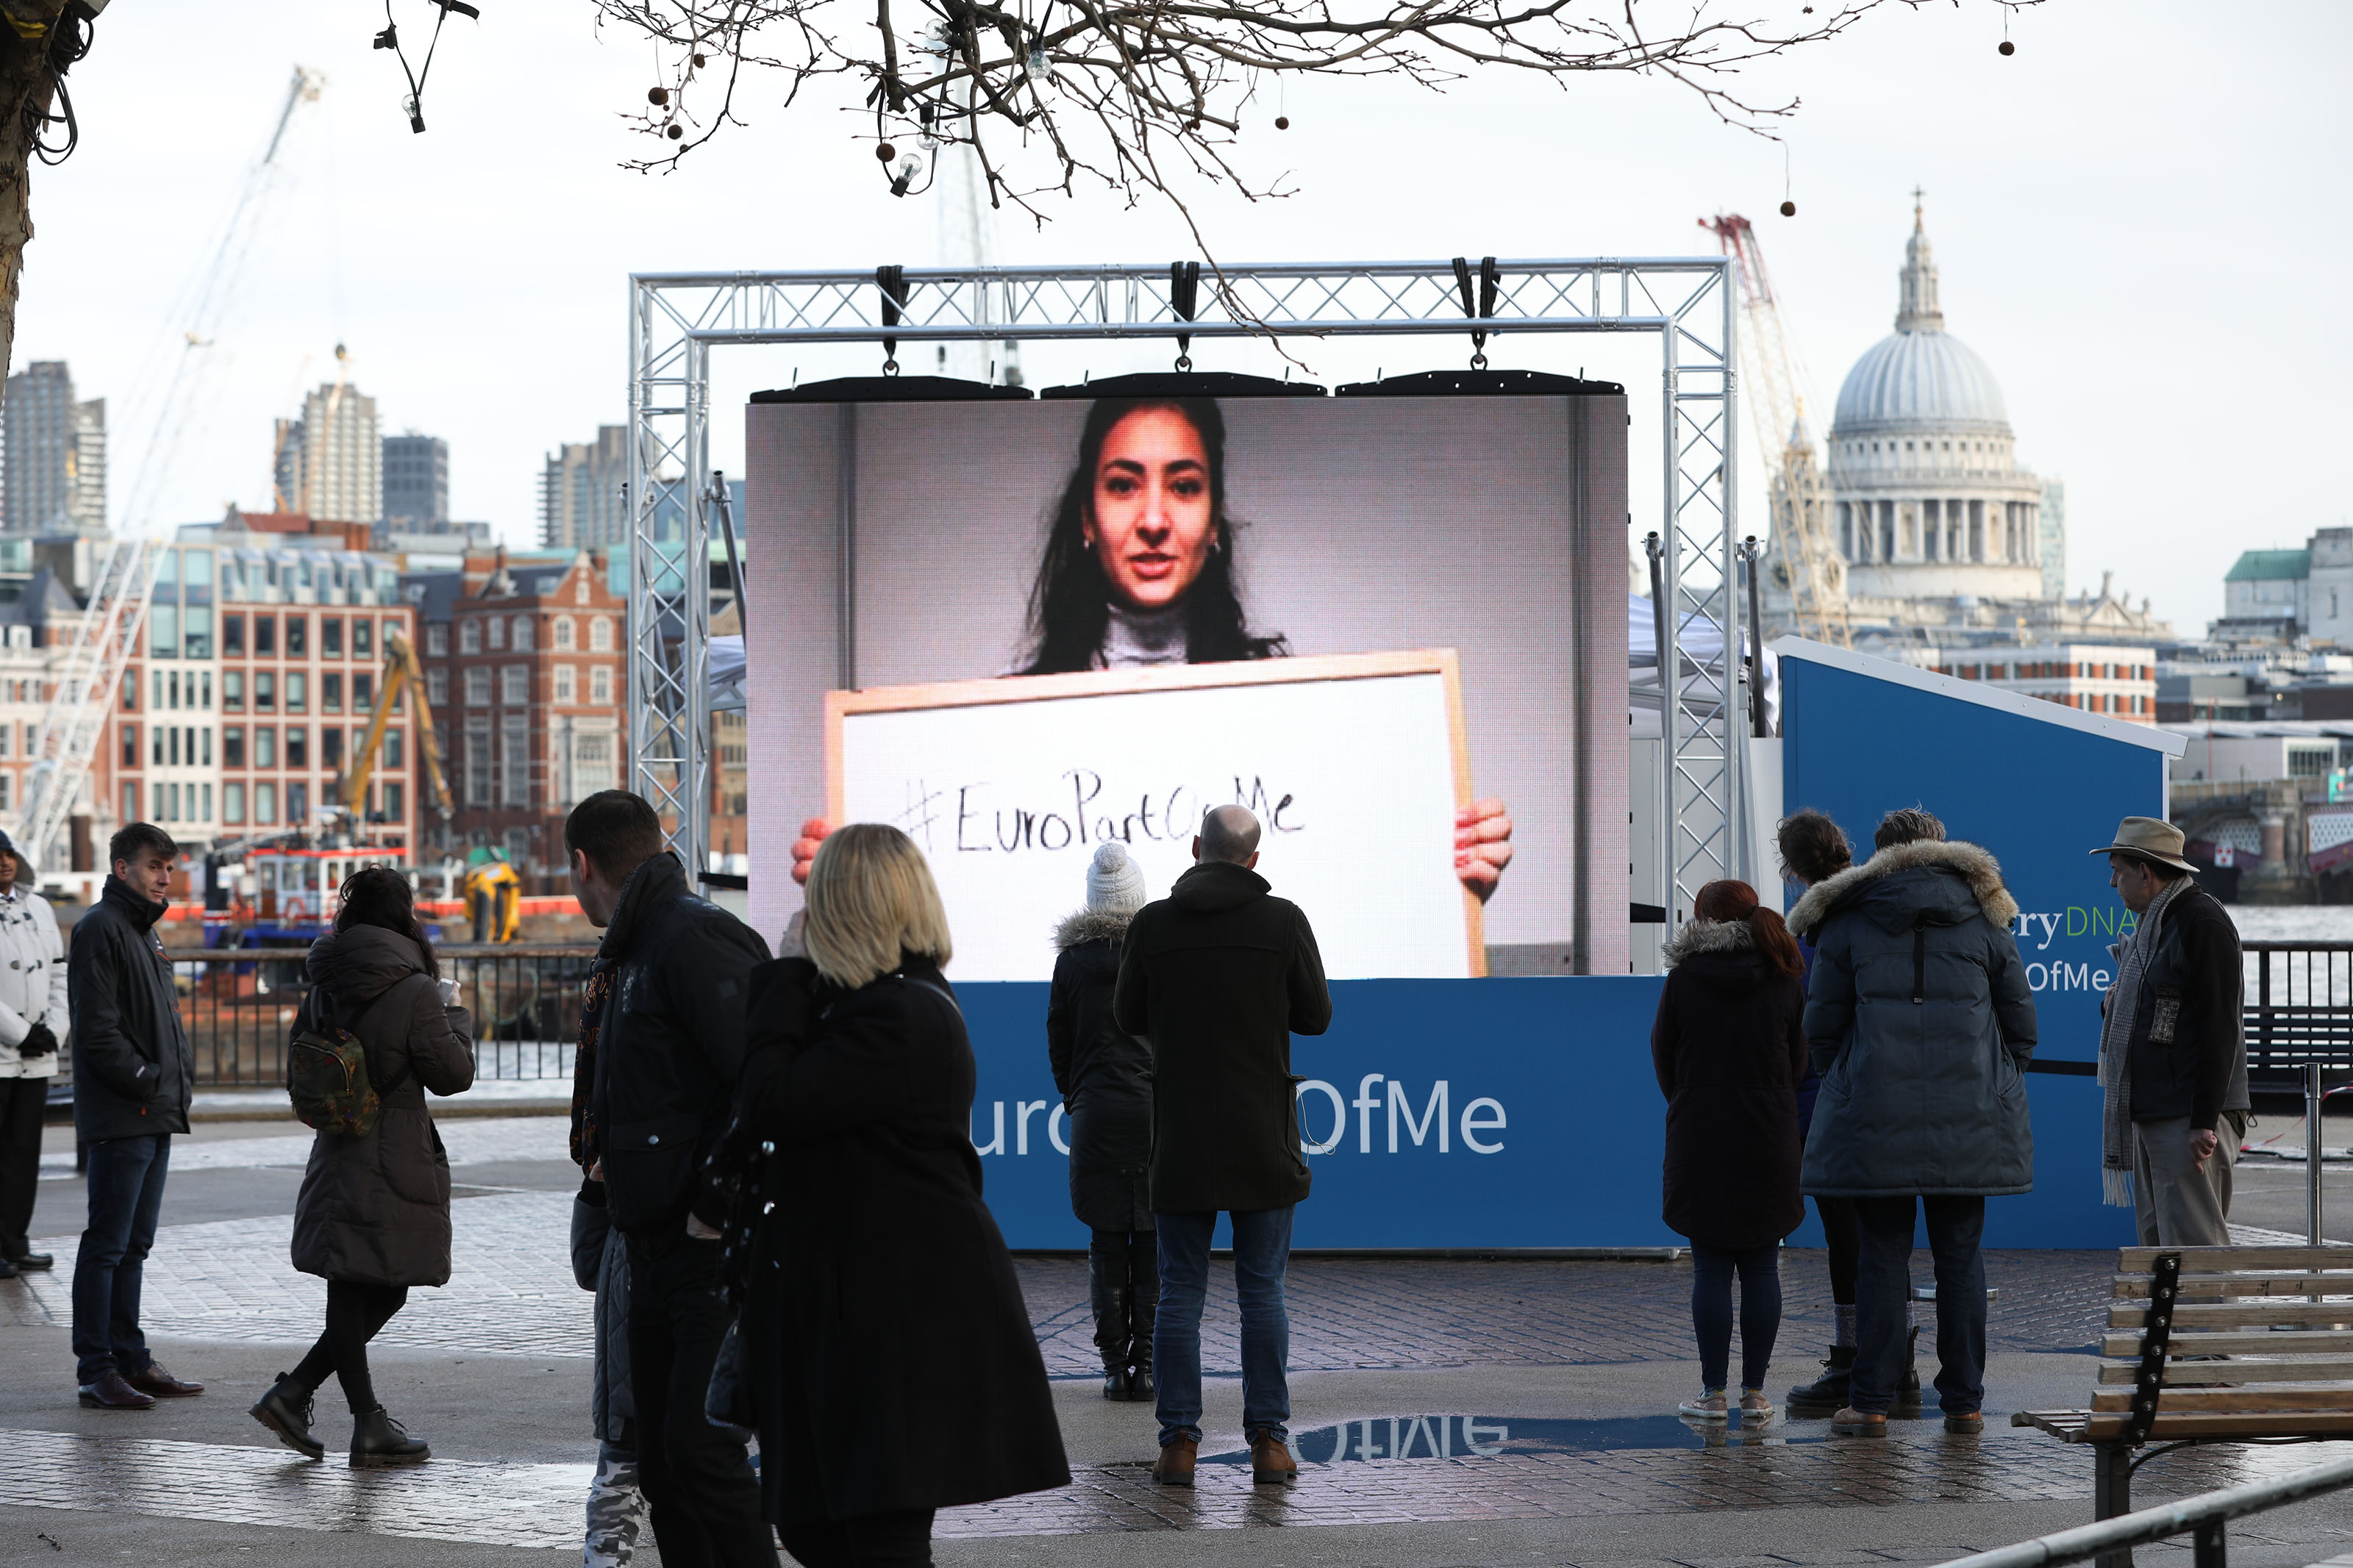 AncestryDNA hosted a giant interactive screen on the Southbank today as part of their #EuroPartOfMe campaign. Members of the public joined celebrities from both sides of the debate - including Alastair Campbell and Cheryl Baker - in recording video messages celebrating their enduring links to Europe. AncestryDNA is a home DNA testing service that enables you to discover the ethnicities in your DNA, going back hundreds of years, as well as revealing who you are genetically connected to across a network of over six million people.